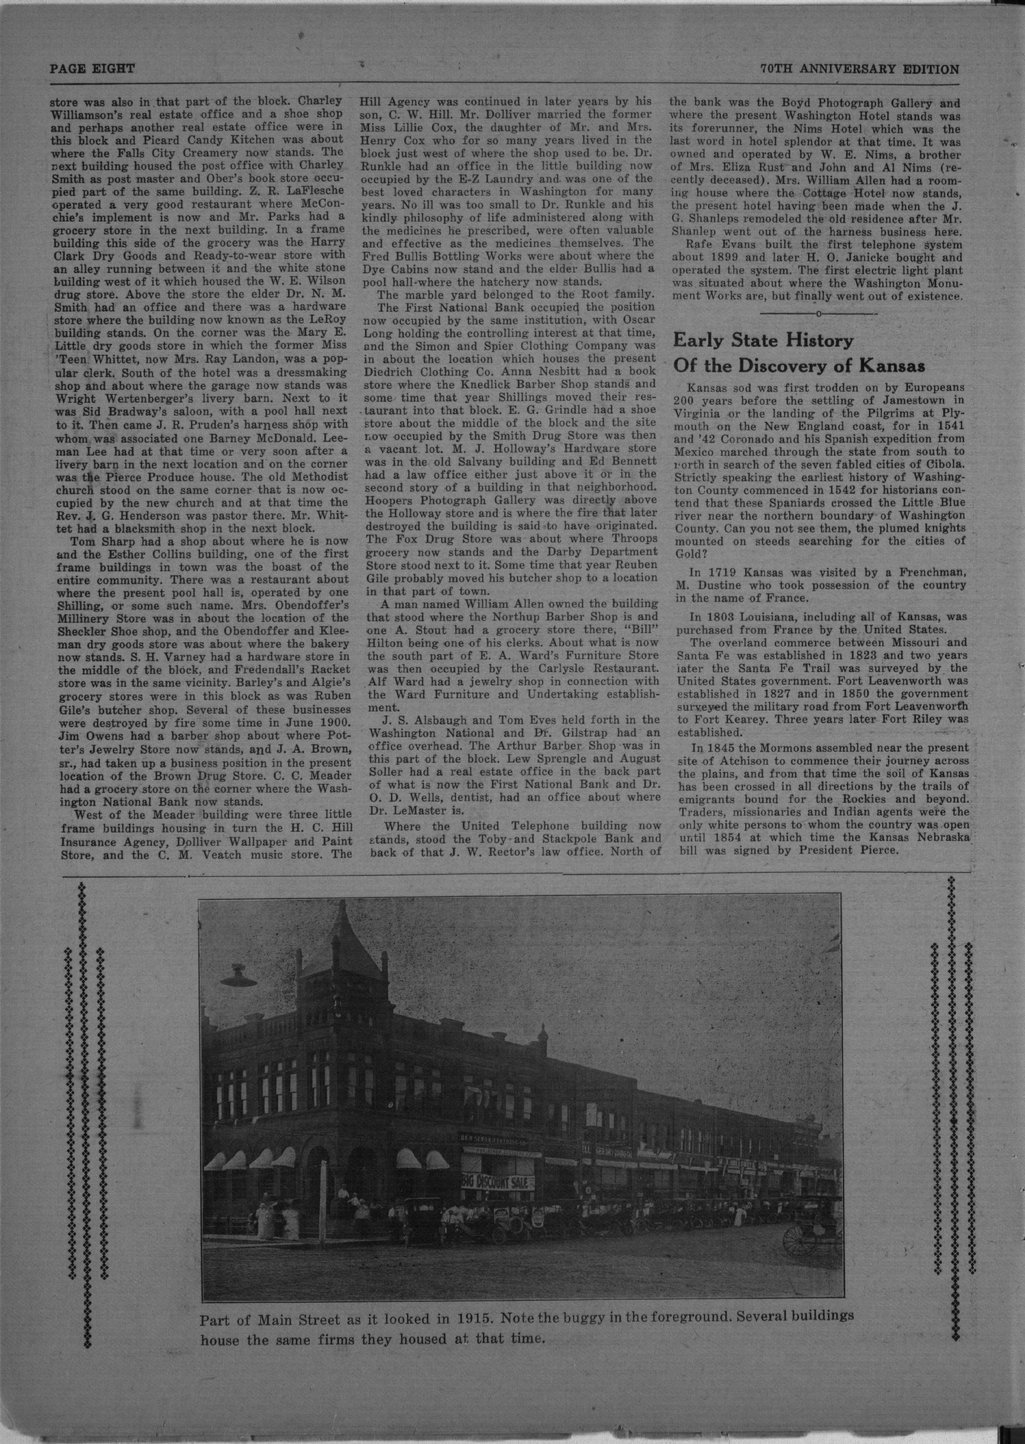 70th anniversary edition supplement to the Washington County Register - 8